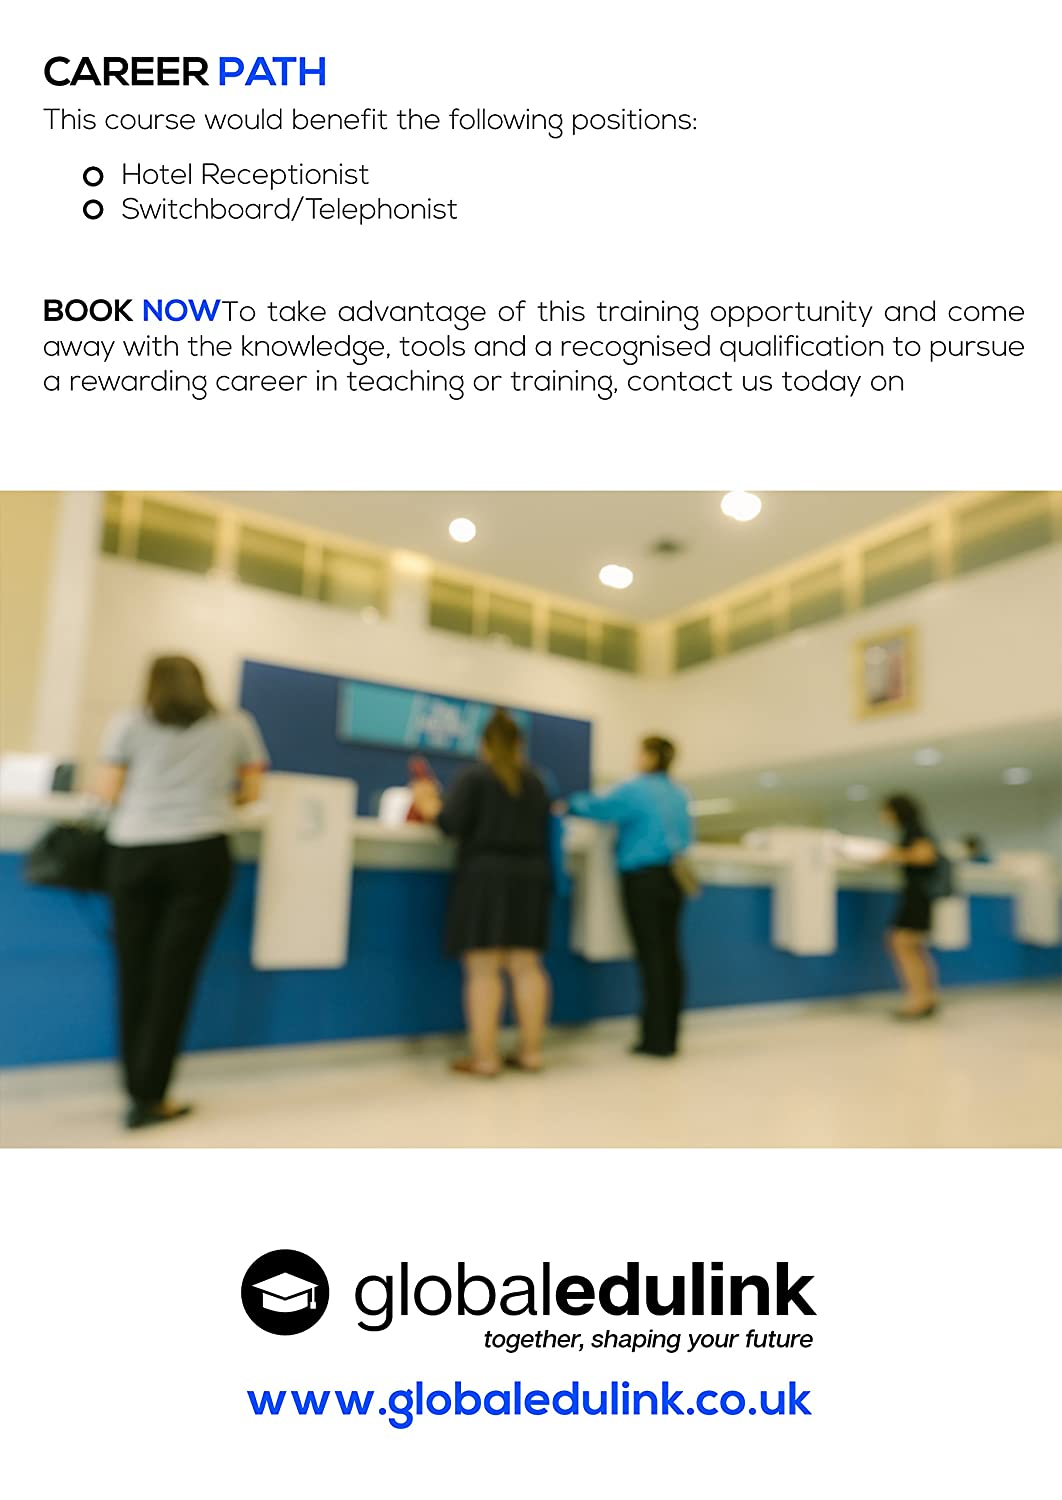 Opera PMS Hotel Software Training Course [Online Code]: Amazon.co.uk:  Software